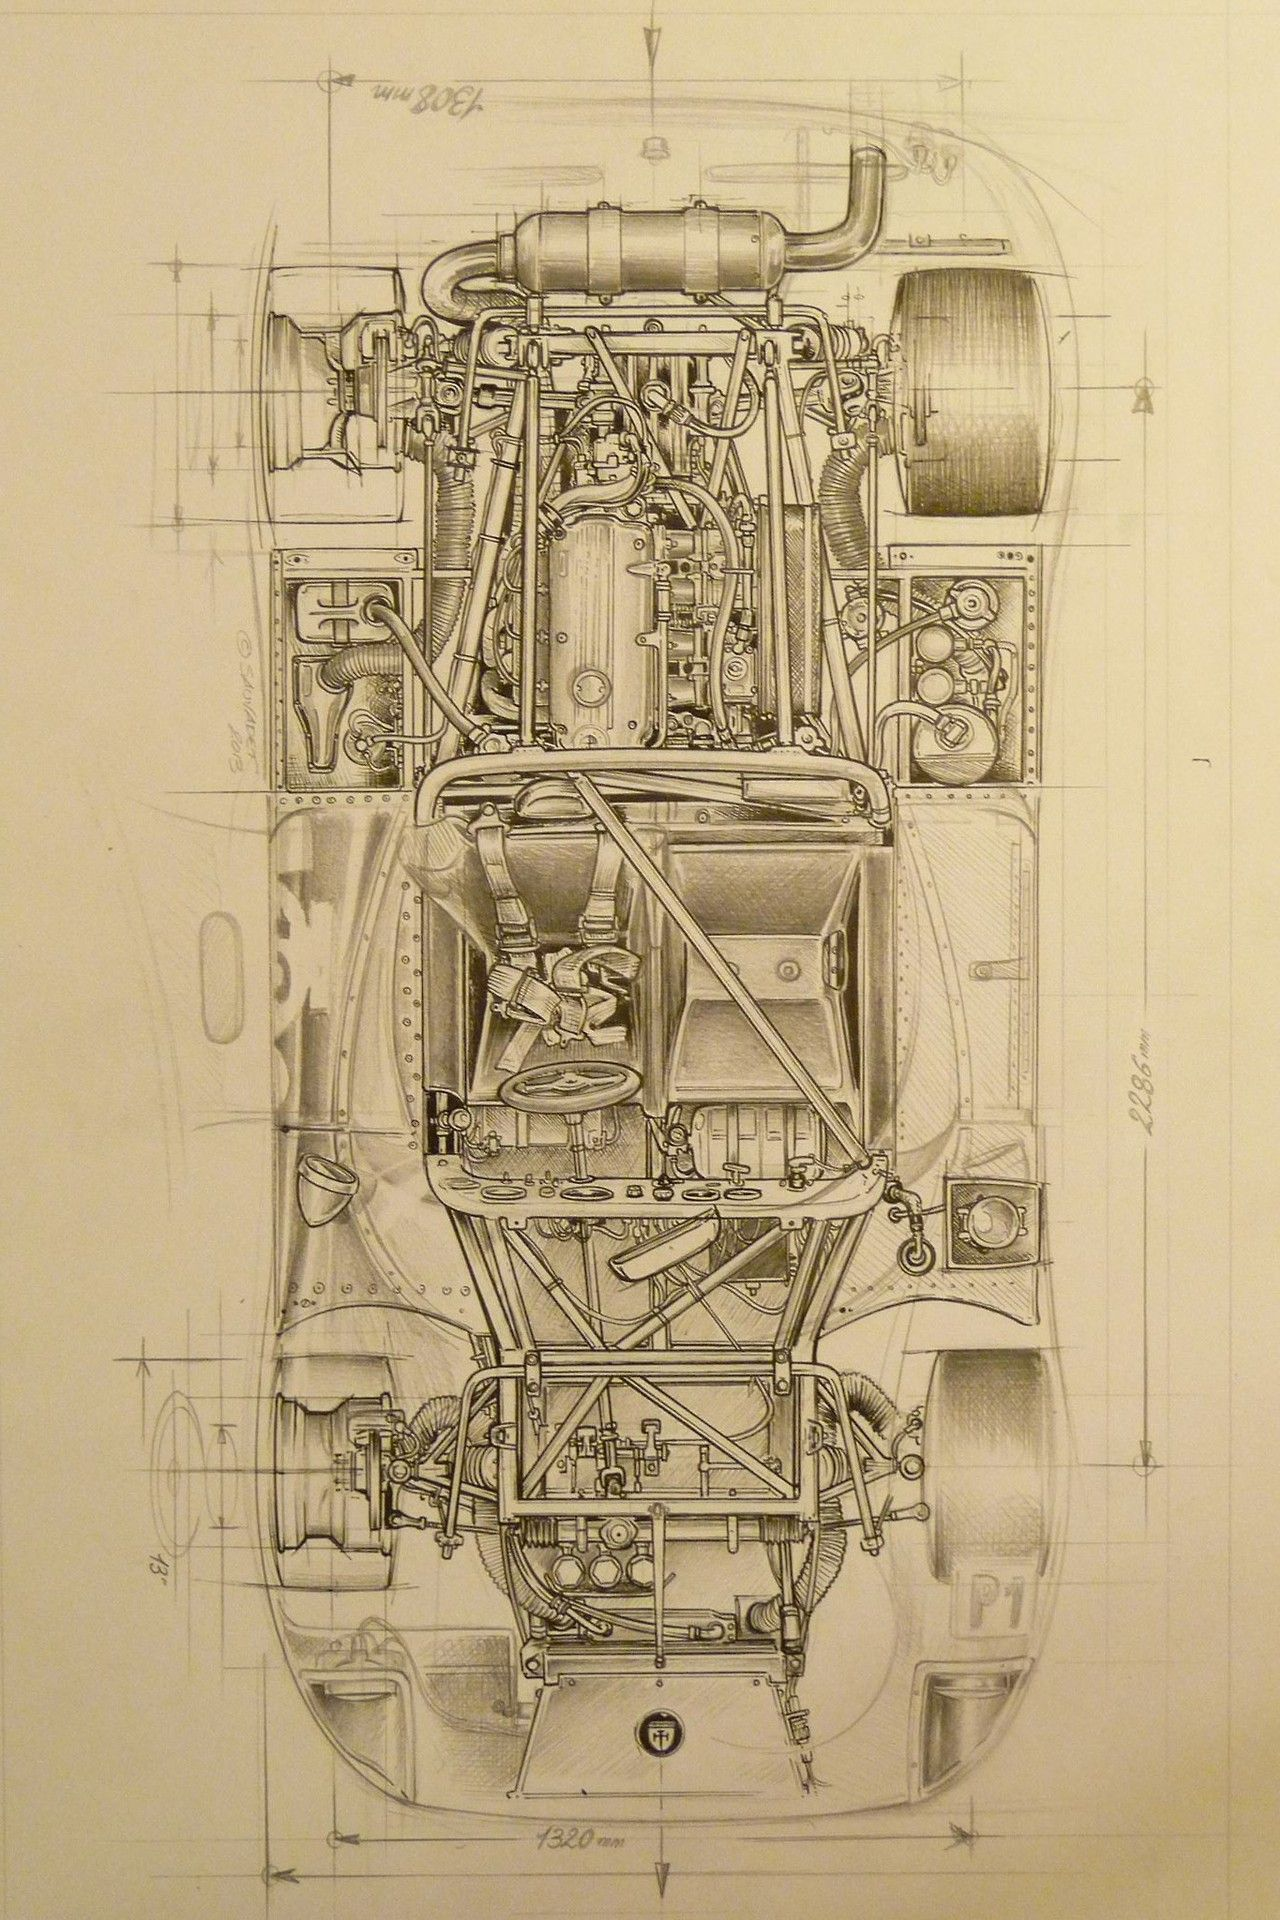 Blue Print For A Race Car All The Detail Exposed Here Capable Printable Basic Electrical Wiring Diagrams Garage Engineer Could Build In His Home This How Burrows V12 5000 Was Conceived